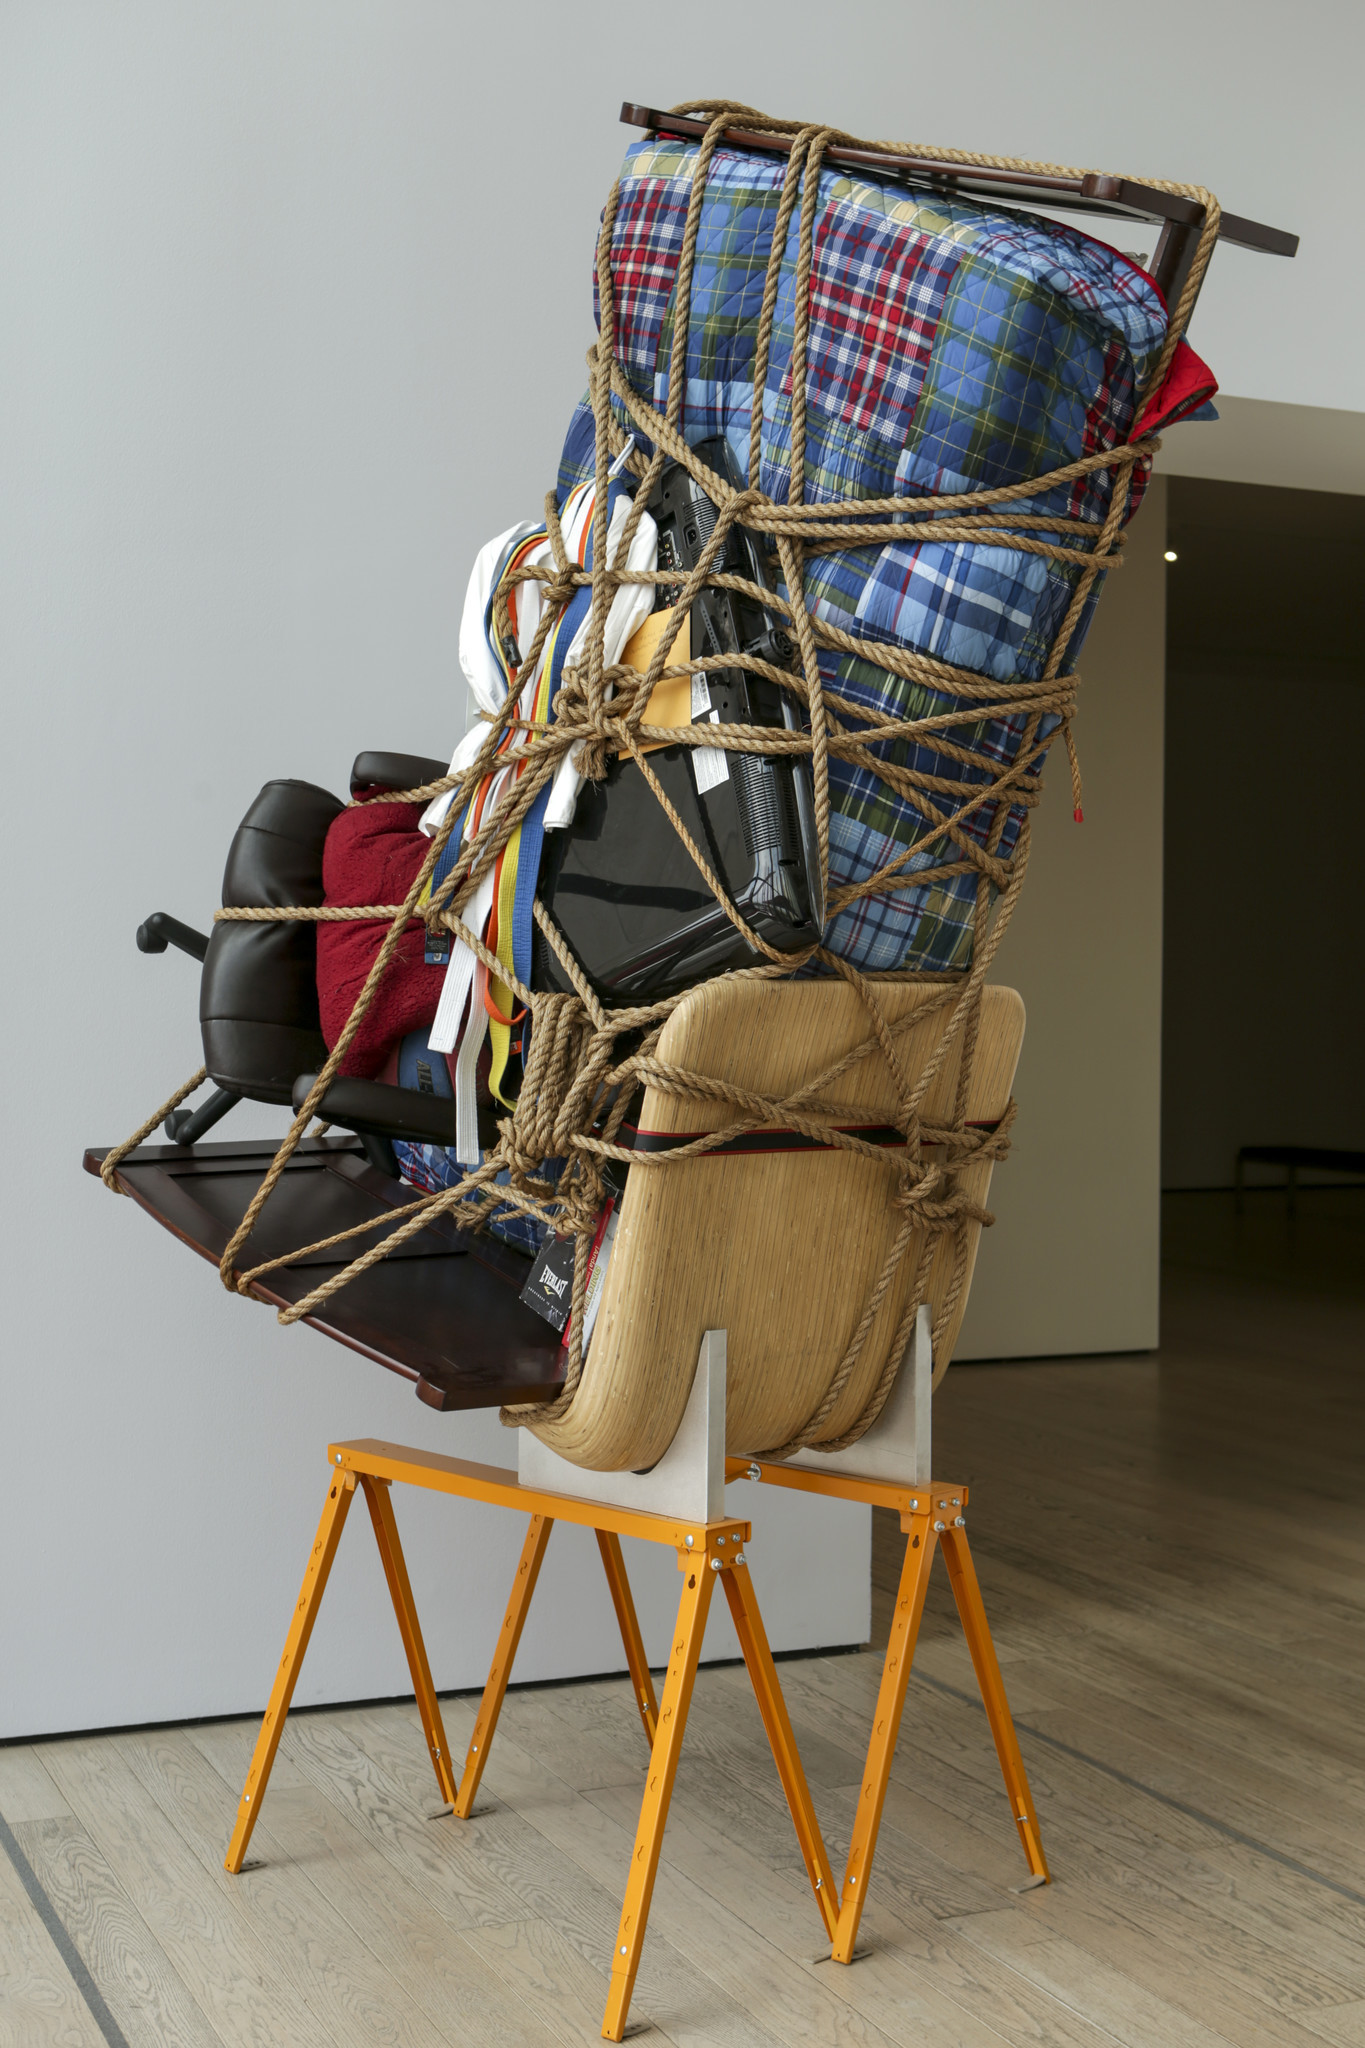 """An installation view of Juan Manuel Montes' belongings in """"Temporary Storage"""" in """"Home: So Different, So Appealing,"""" at LACMA."""